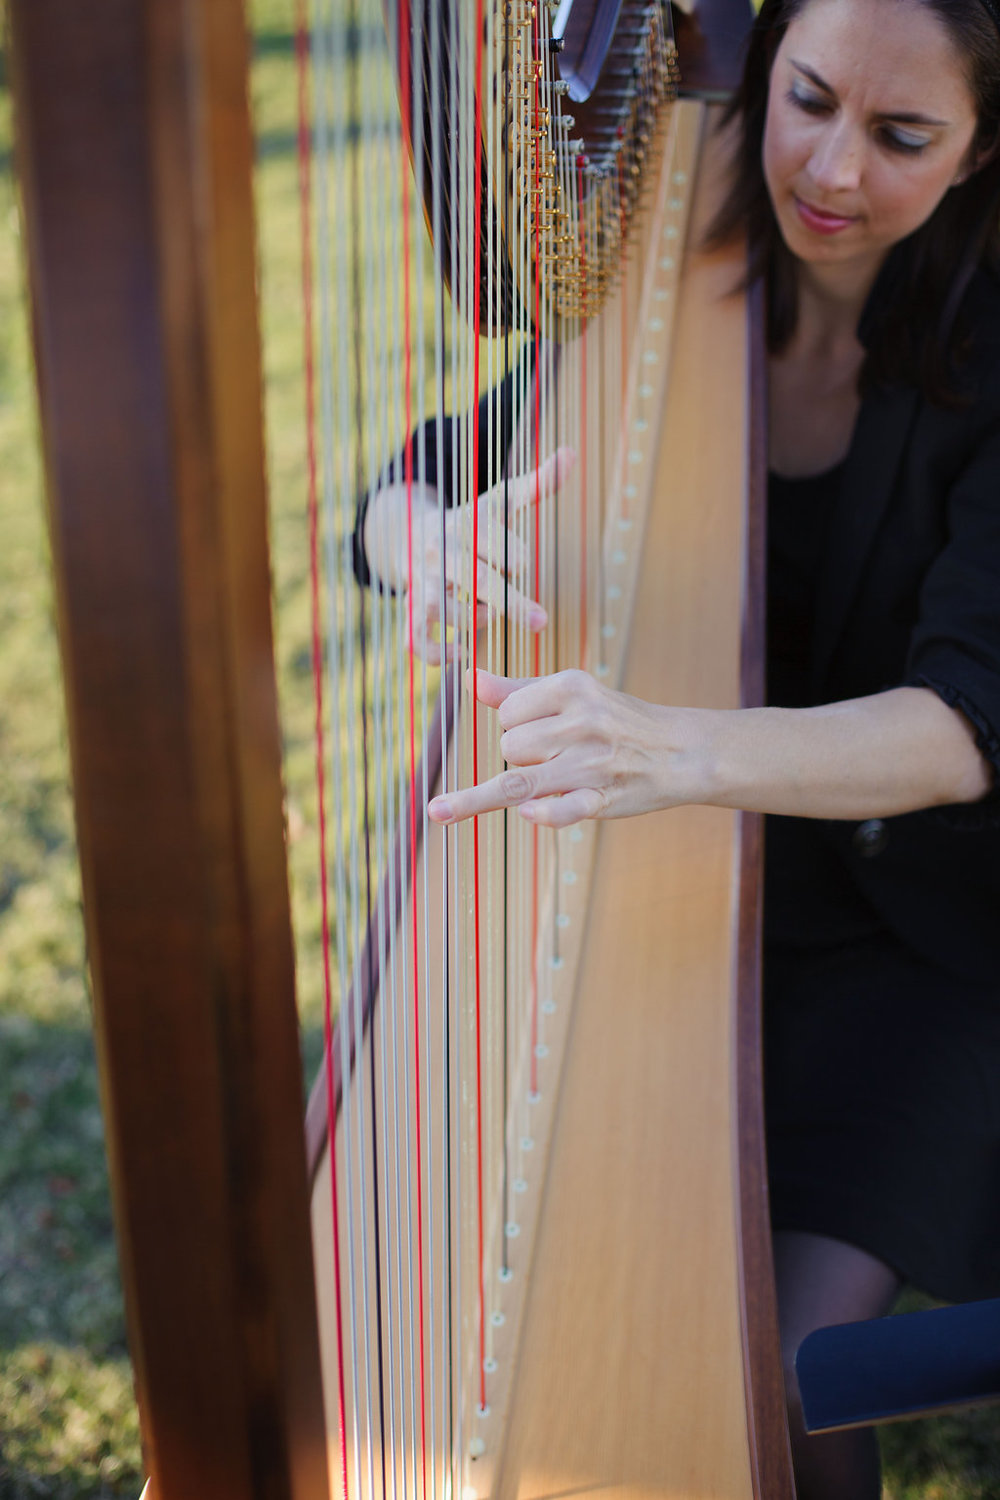 A harpist played as everyone walked down the aisle, adding a sophisticated and romantic touch to the already beautiful outdoor ceremony.